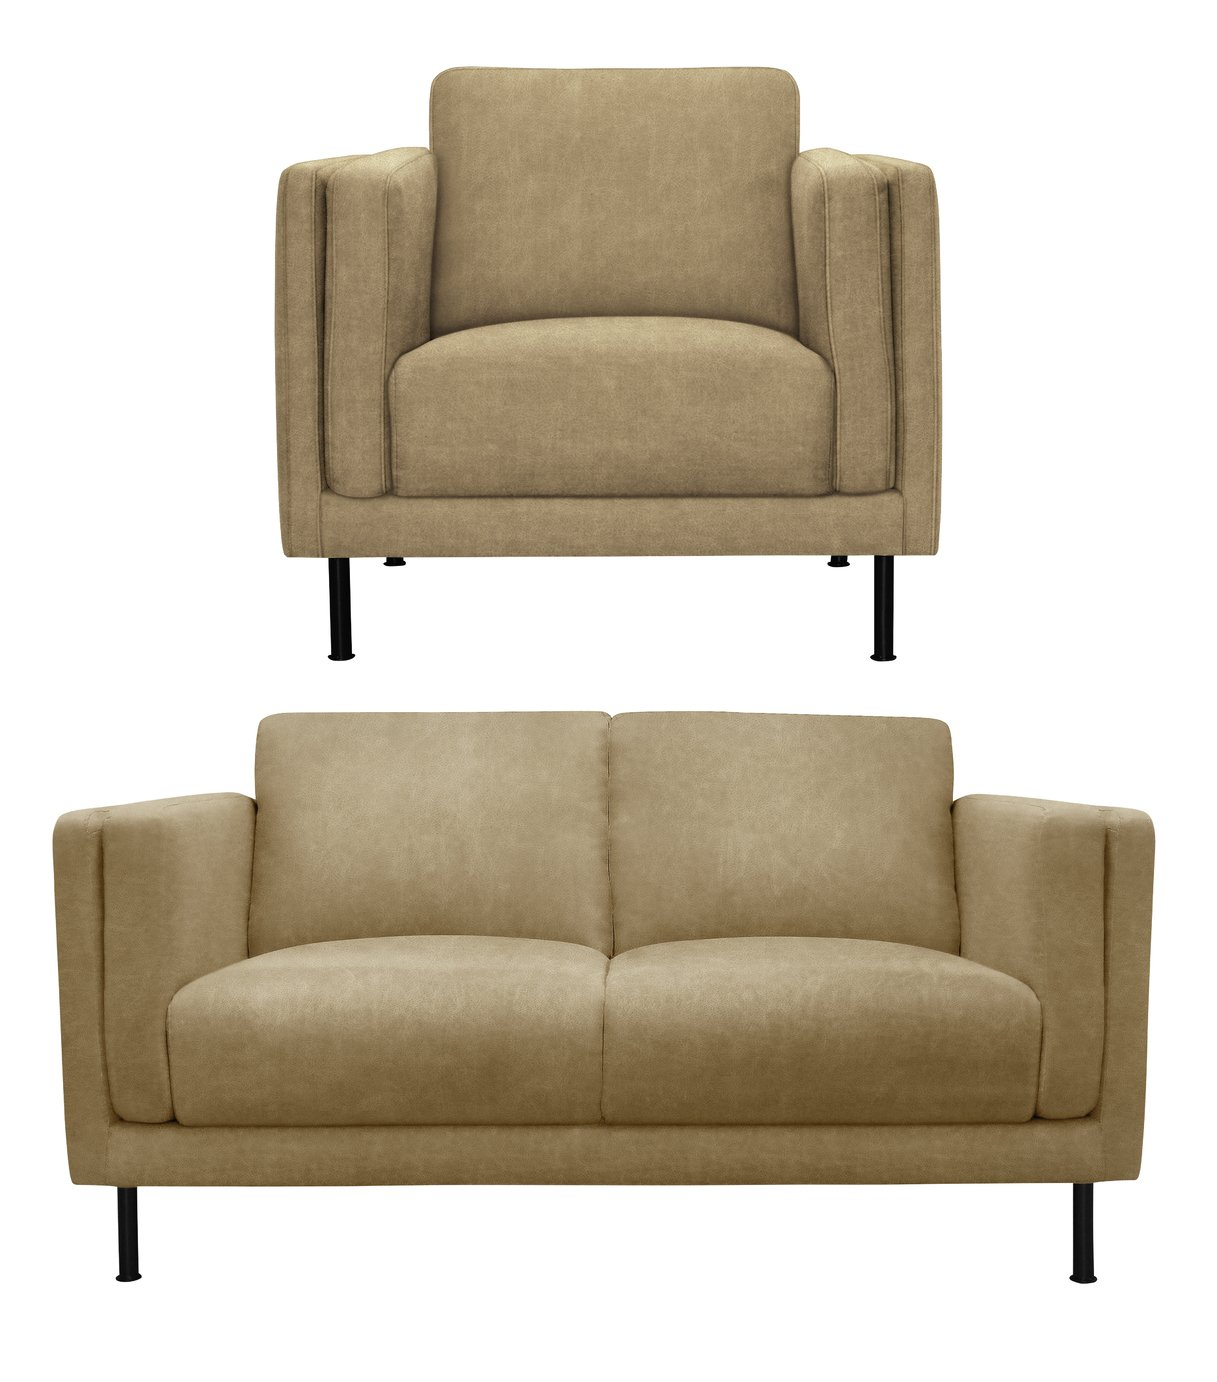 Argos Home Hugo Faux Leather Chair and 2 Seater Sofa review